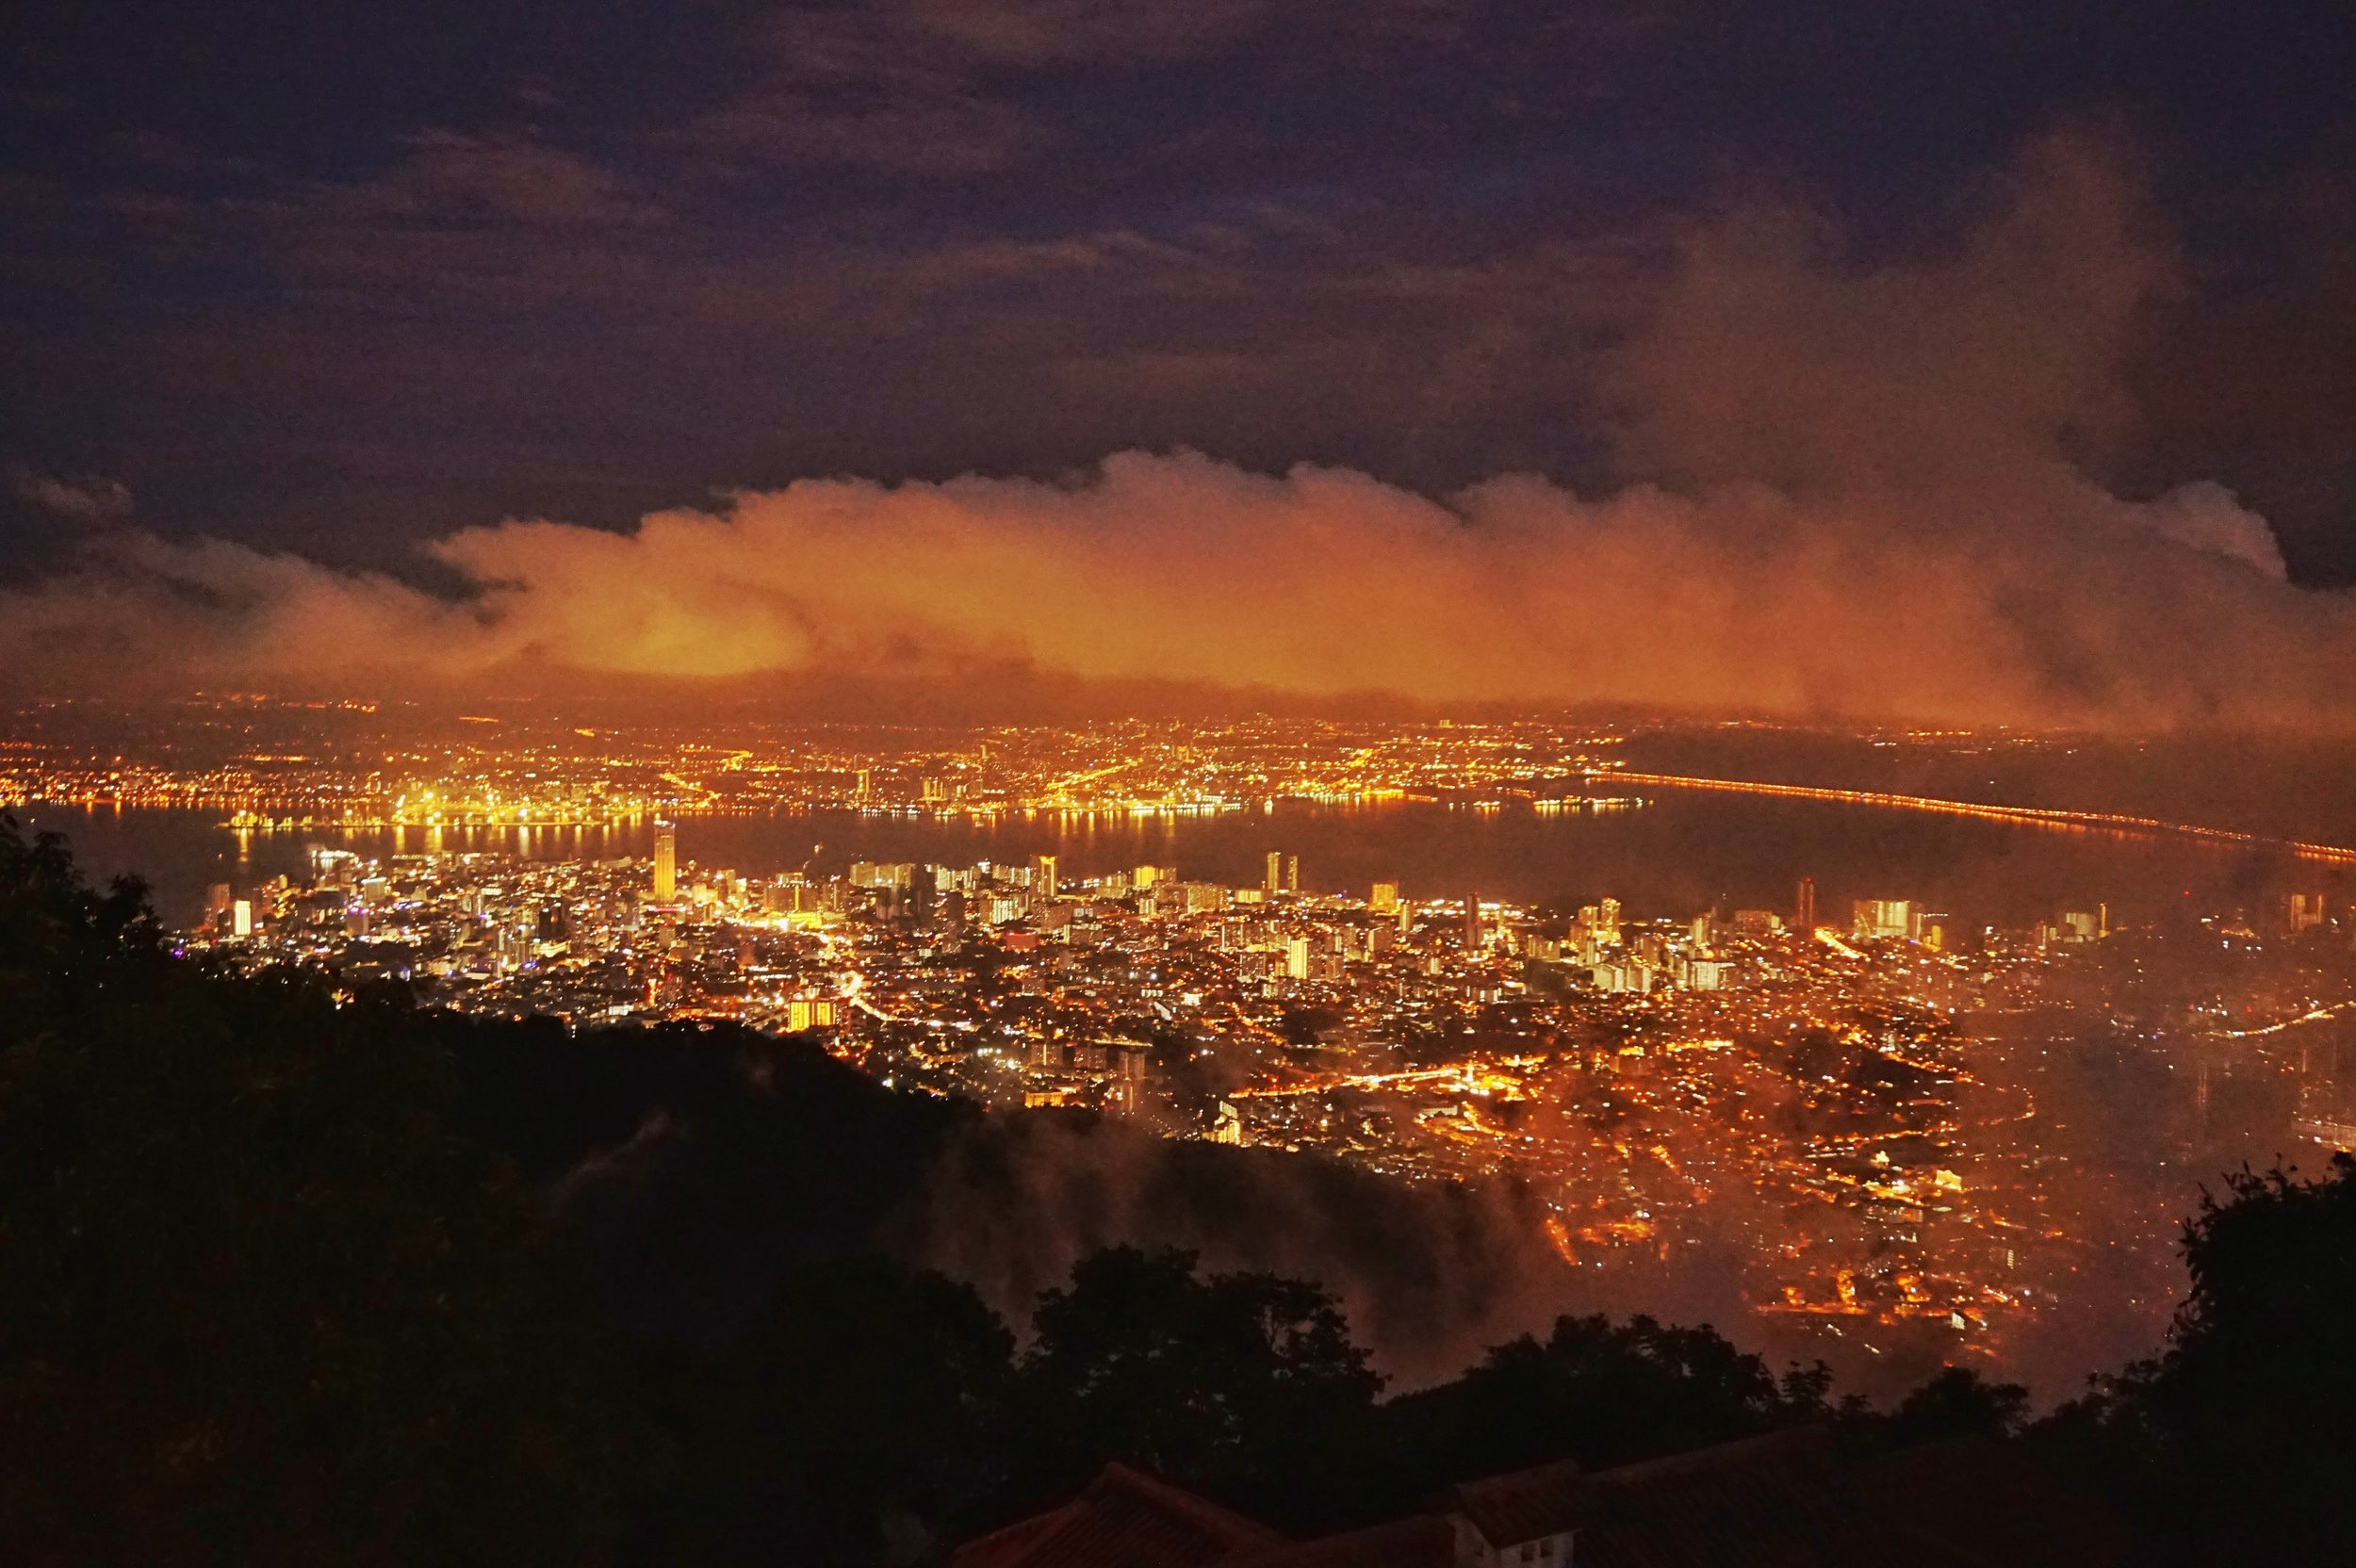 Climbing Penang Hill is one of the best things to do in Penang. Definitely include it in your 3 day Penang itinerary.